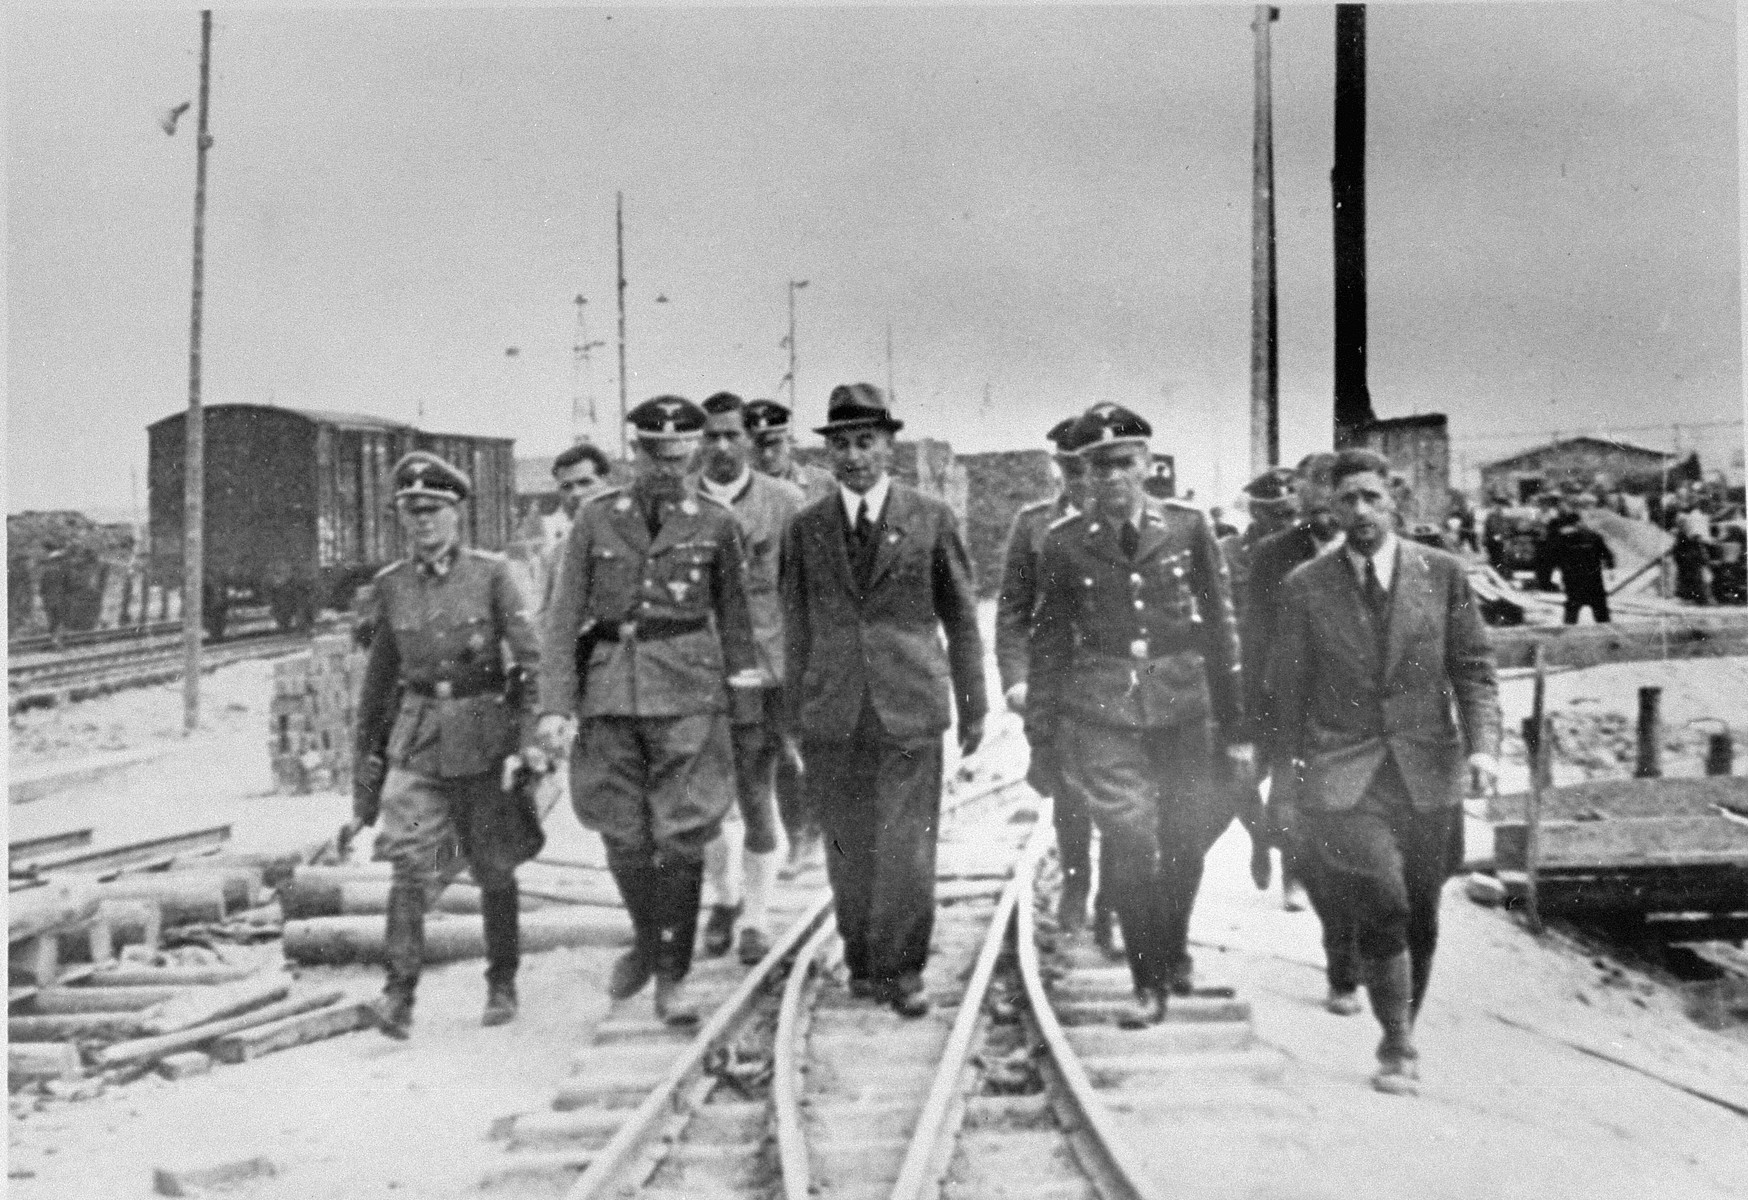 Reichsfuehrer SS Heinrich Himmler tours the Monowitz-Buna building site in the company of SS officers and IG Farben engineers.   Pictured in the front row from left to right are: Rudolf Brandt, Heinrich Himmler, Max Faust, and Rudolf Hoess.  Faust, who was an IG Farben engineer, was the head of building operations at Monowitz-Buna.